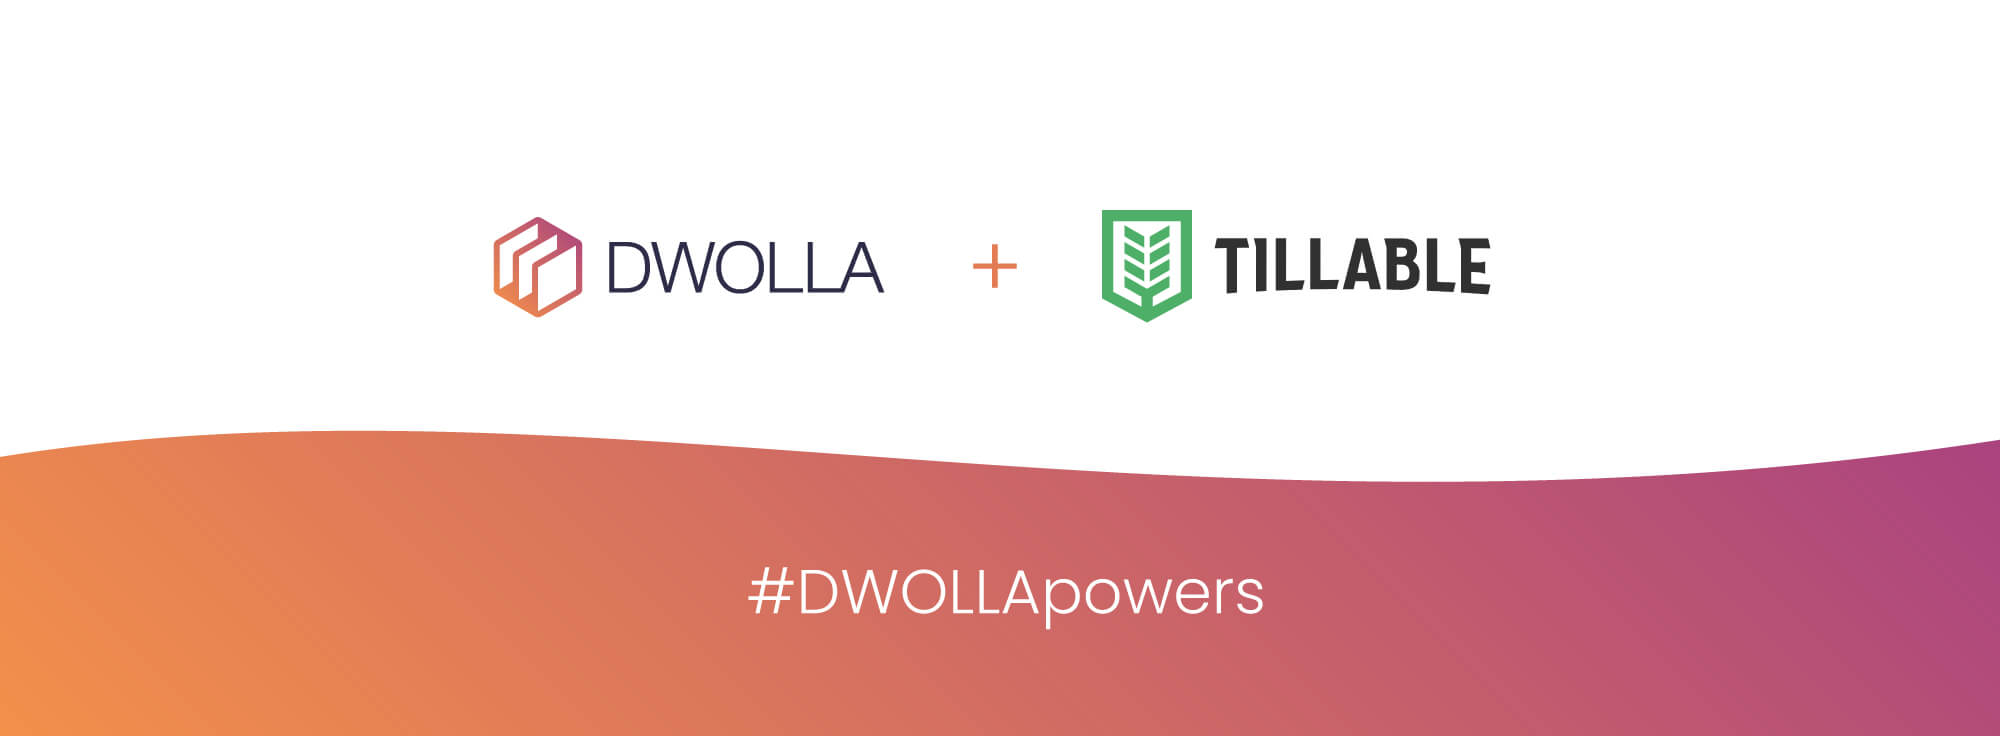 dwolla powers tillable image